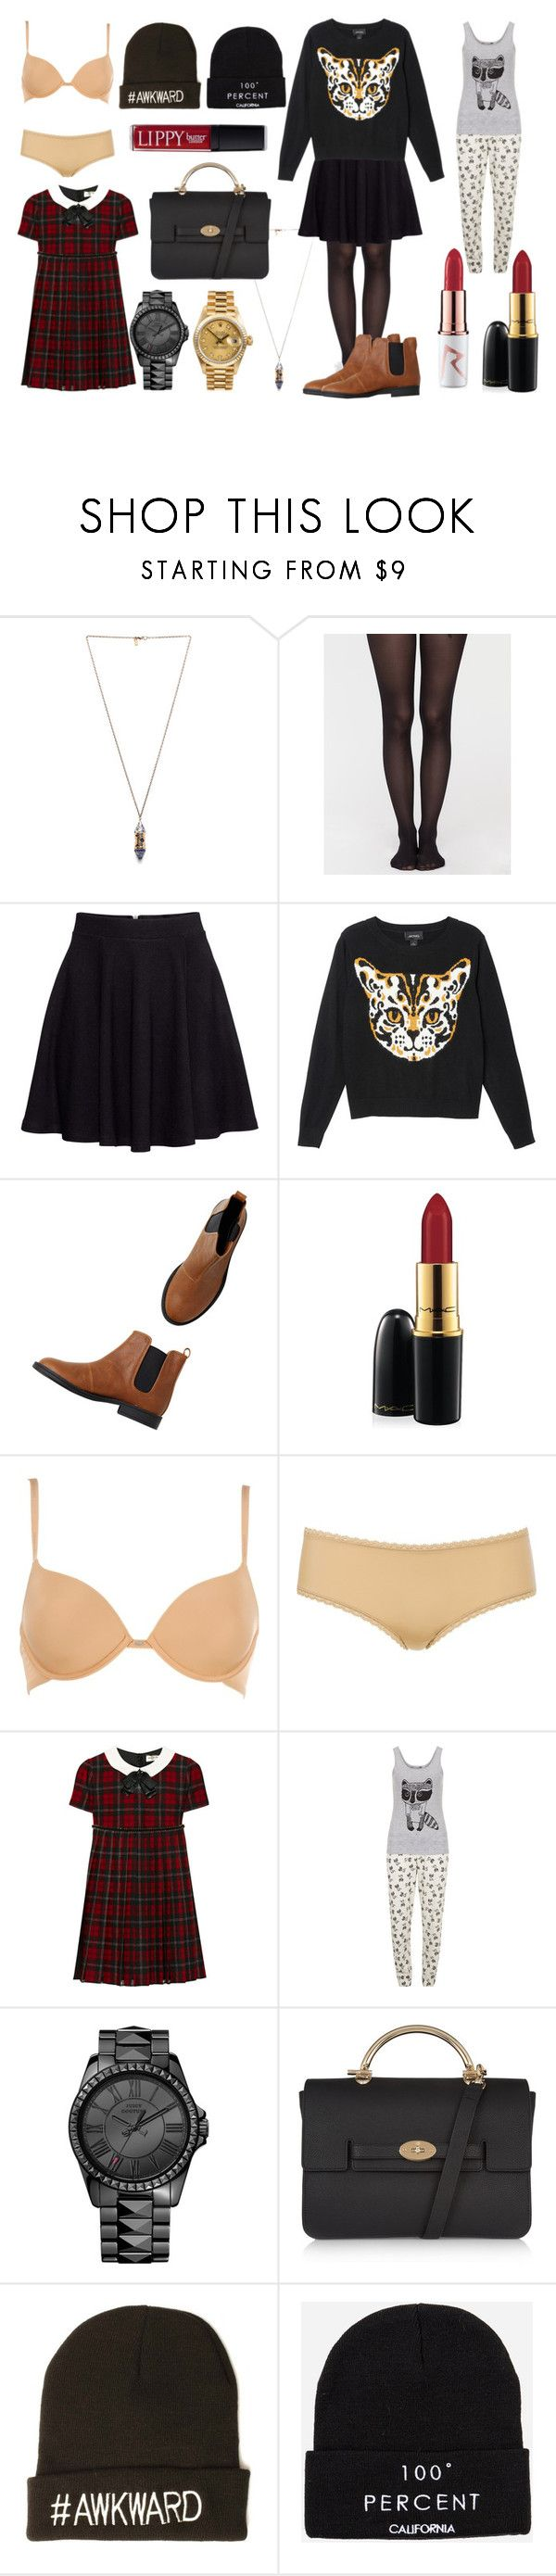 """""""Cravings"""" by blogbyfifi ❤ liked on Polyvore featuring Pamela Love, H&M, Monki, MAC Cosmetics, Calvin Klein Underwear, Yves Saint Laurent, Dorothy Perkins, Juicy Couture, Rolex and Mulberry"""